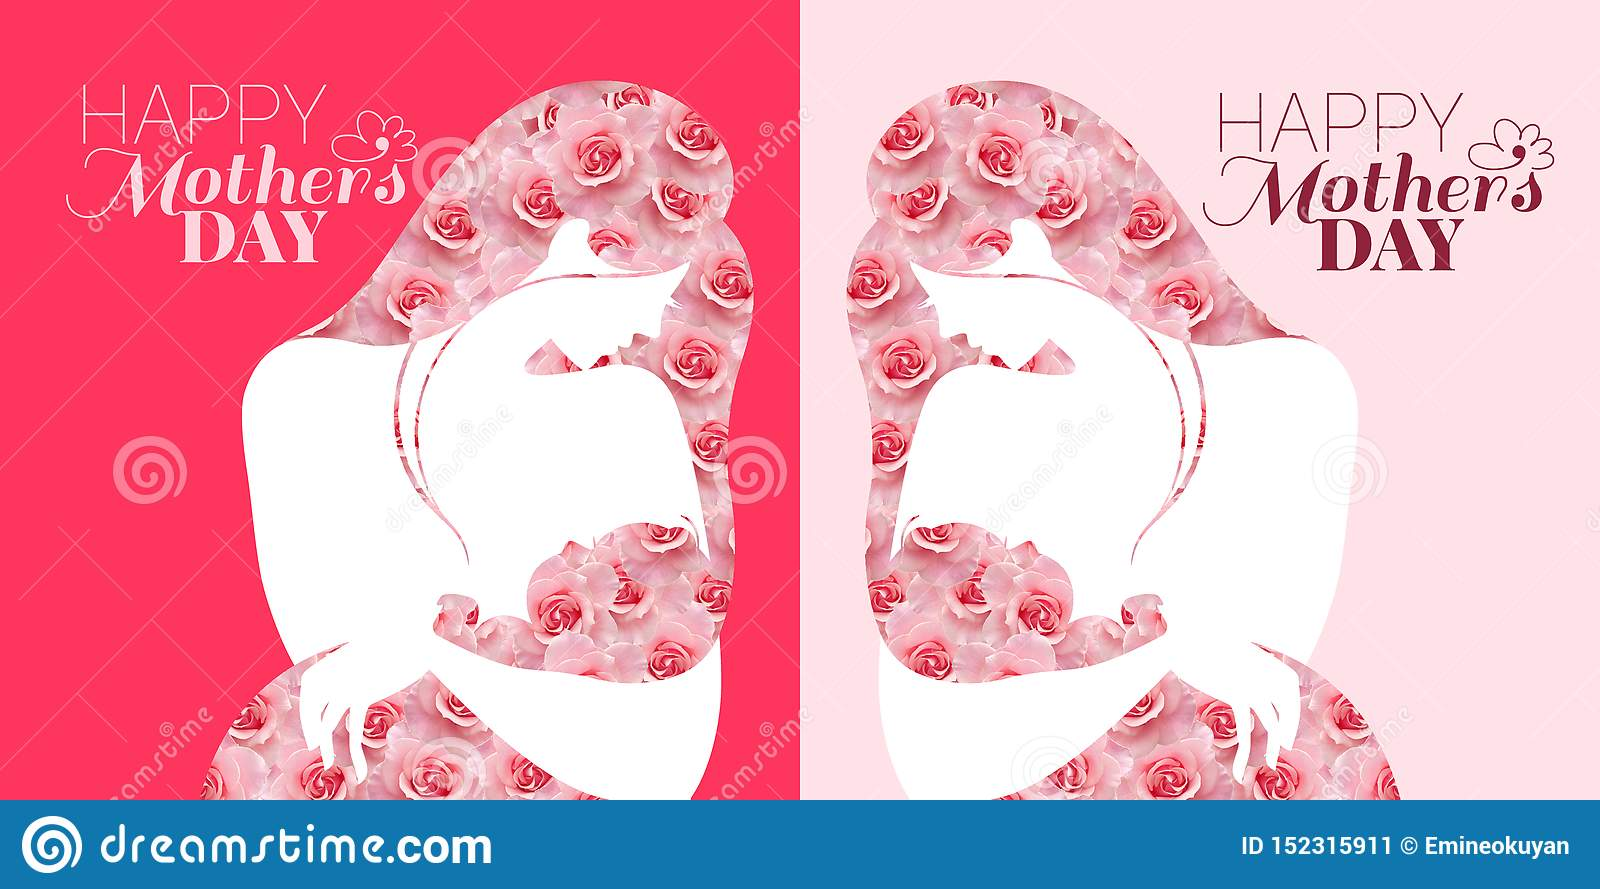 Mothers day celebration card. Mother and Baby on the pink background